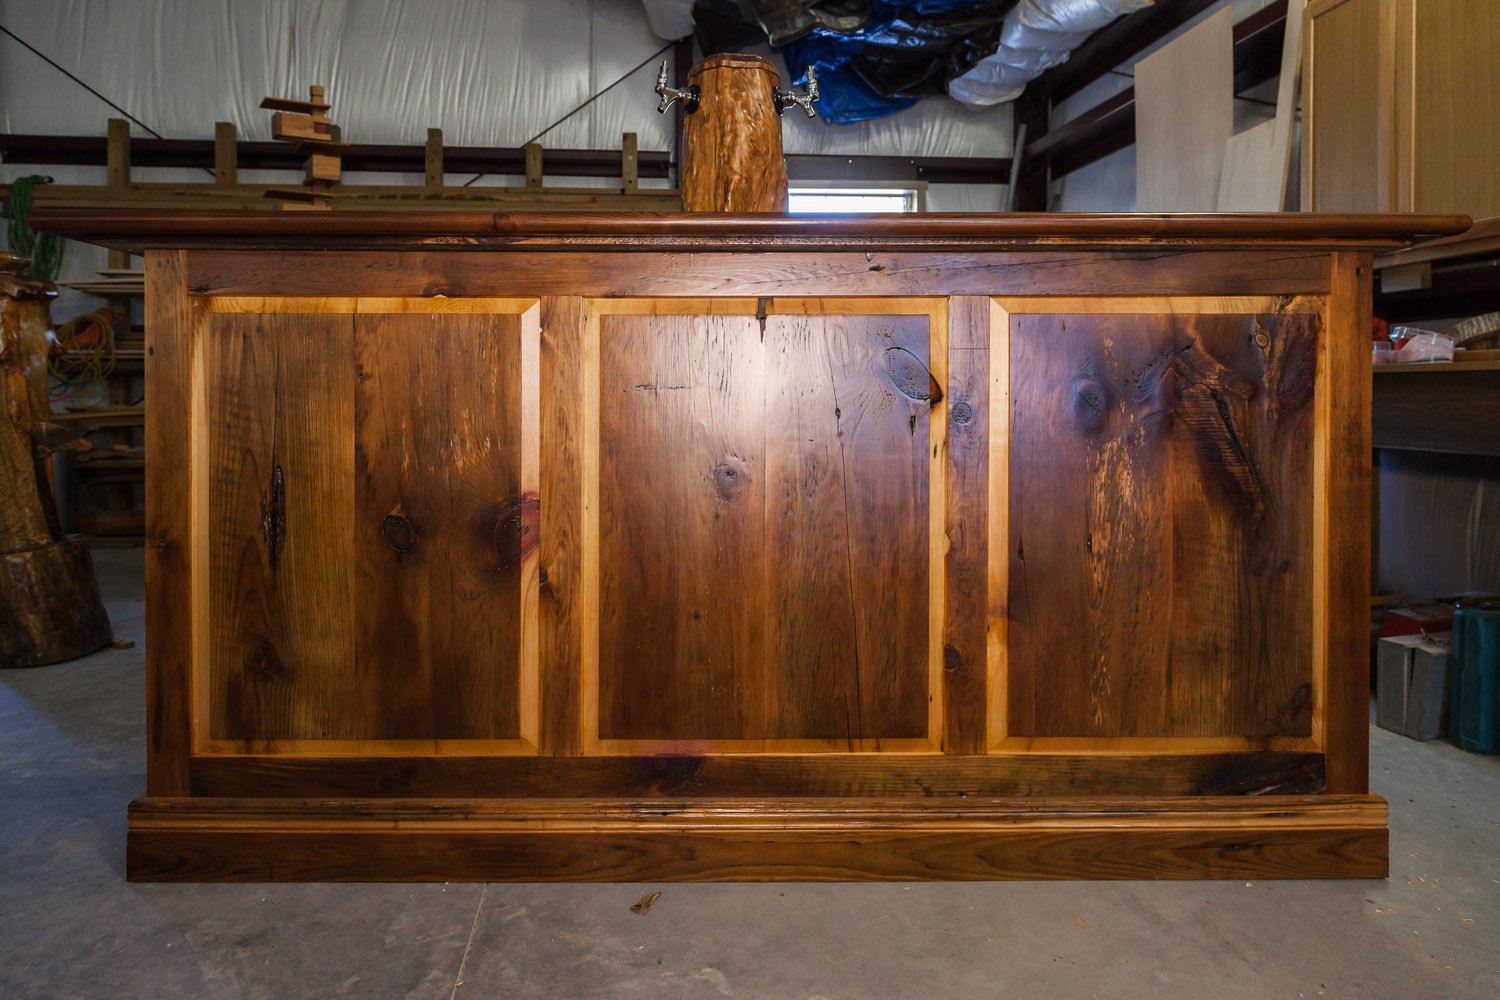 This barn-wood bar is made from 100 percent recycled wood. The tap tower comes from a cypress tree that was toppled by Hurricane Irma in 2017.